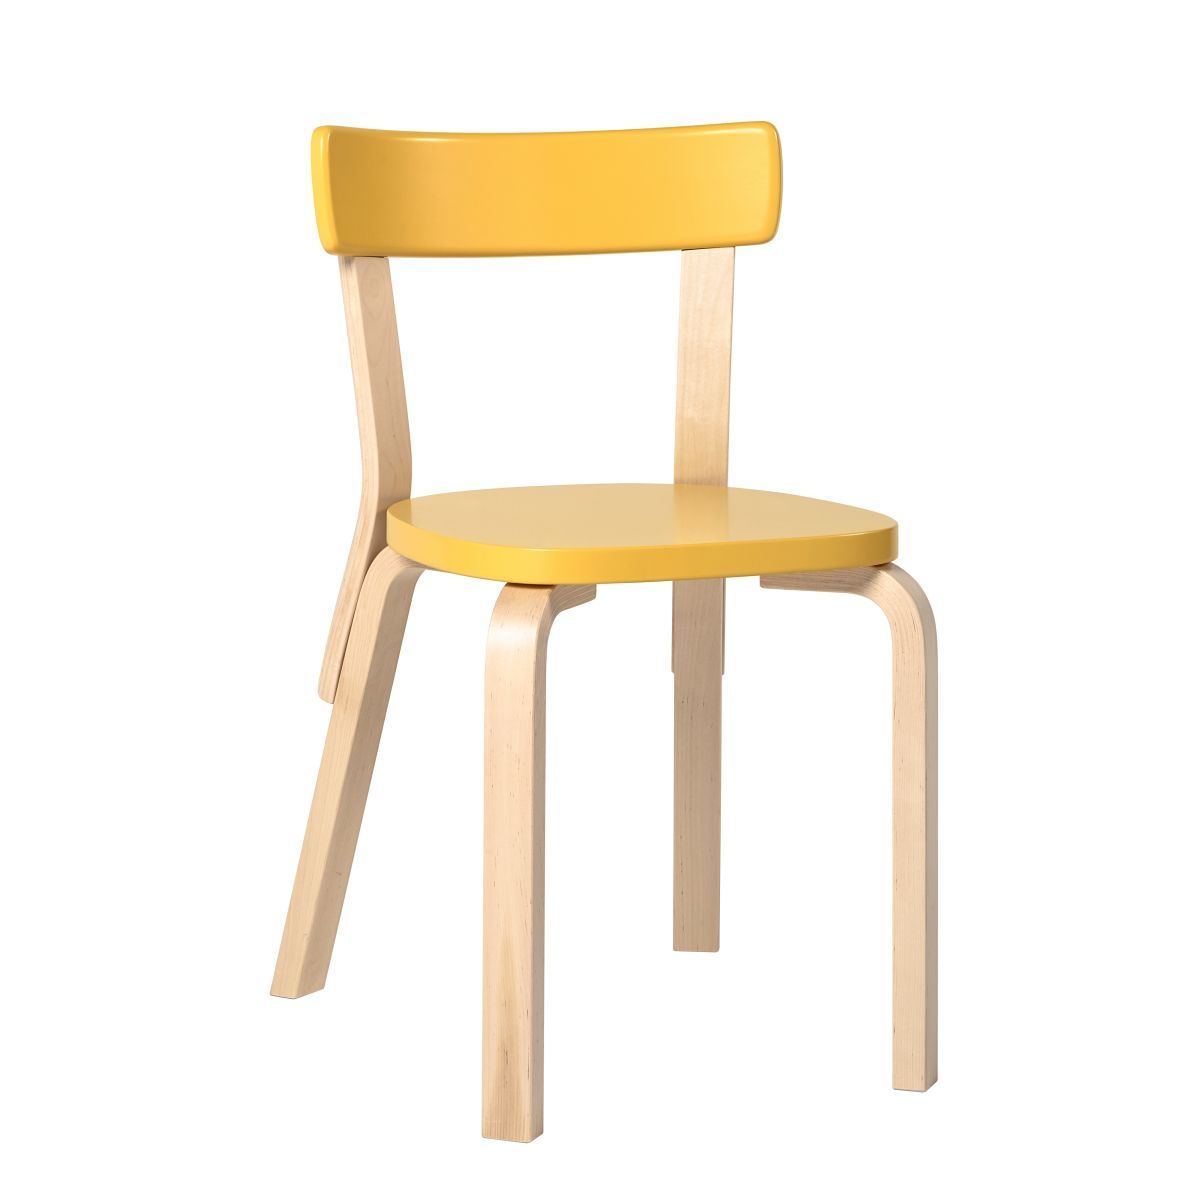 Chair-69-Yellow-Lacquer-Seat